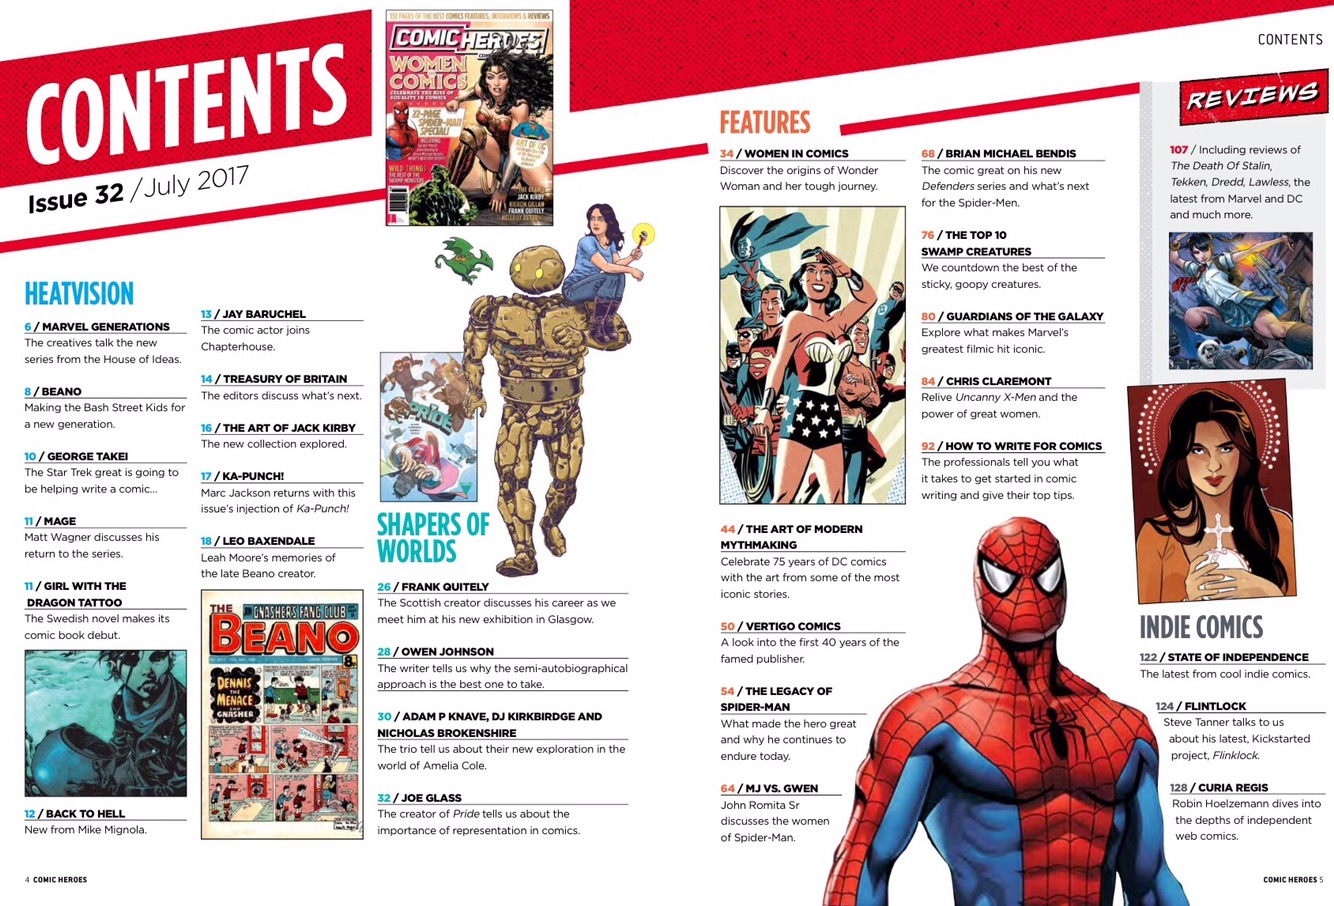 Comic Heroes Issue 32 - Contents